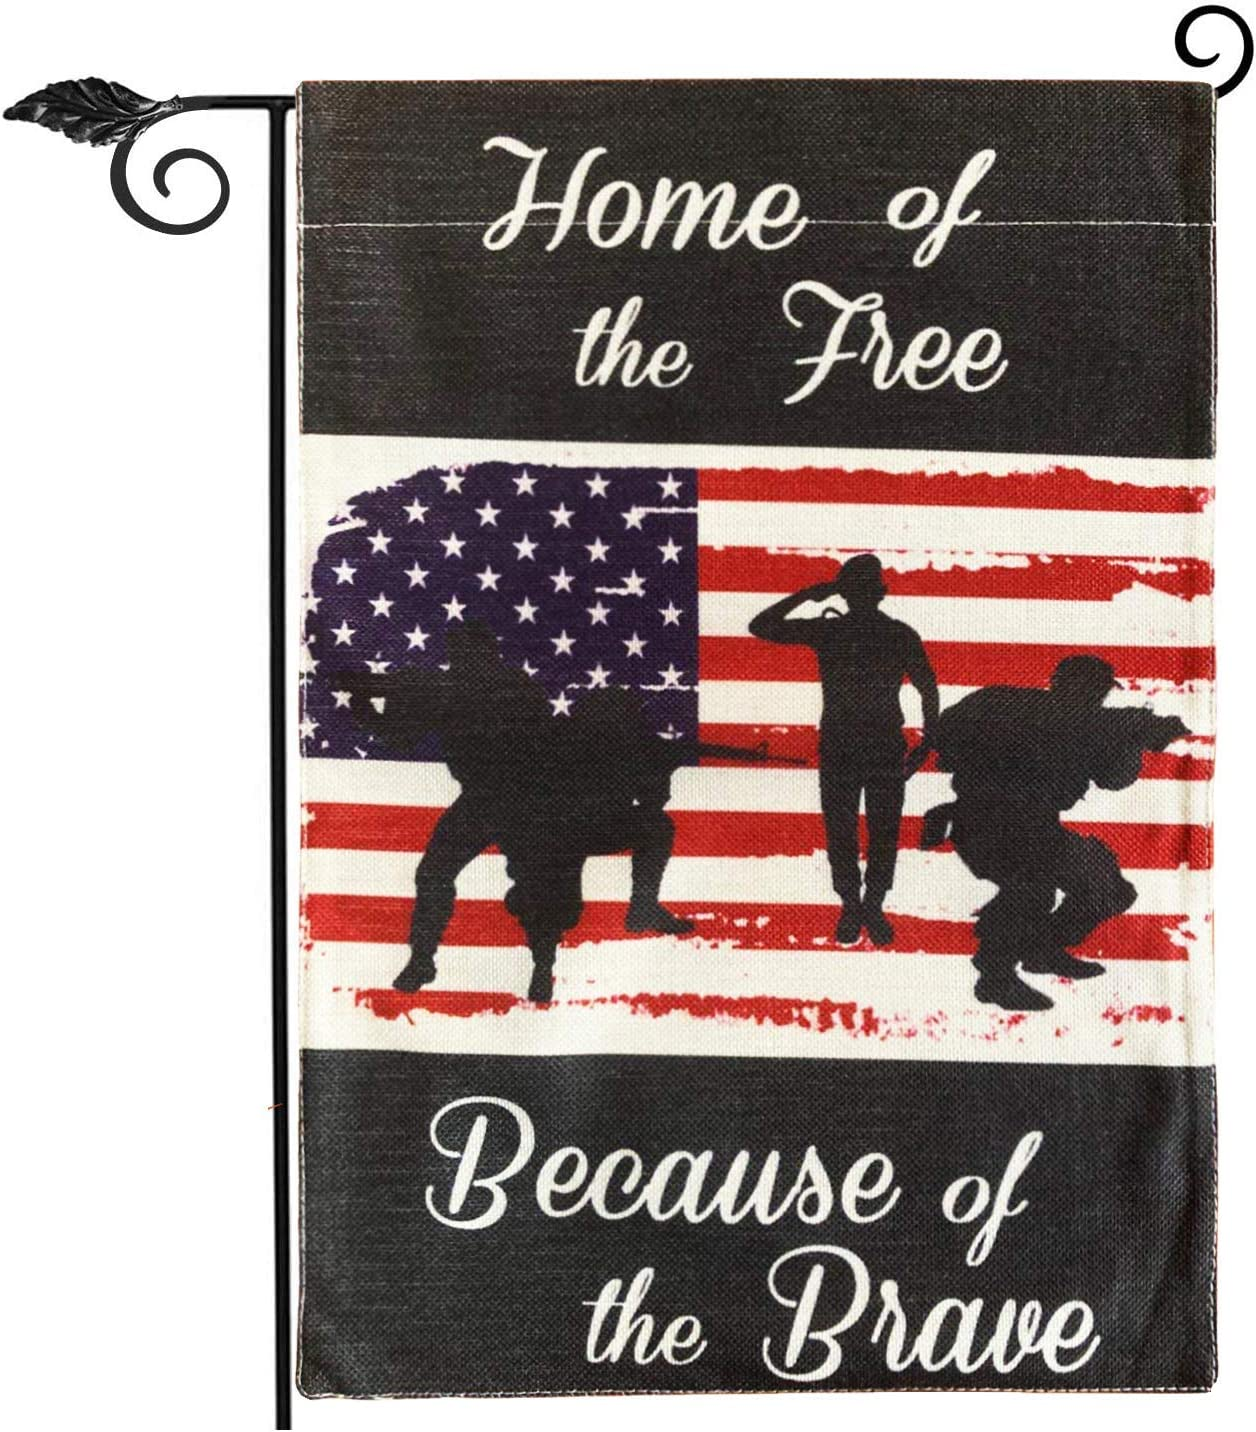 Gz party Patriotic Soldier Garden Flag,4th of July Memorial Day Independence Day Burlap Garden Yard Outdoor Decoration,Home of The Free,Because of The Brave(Garden Size-12.5x18)